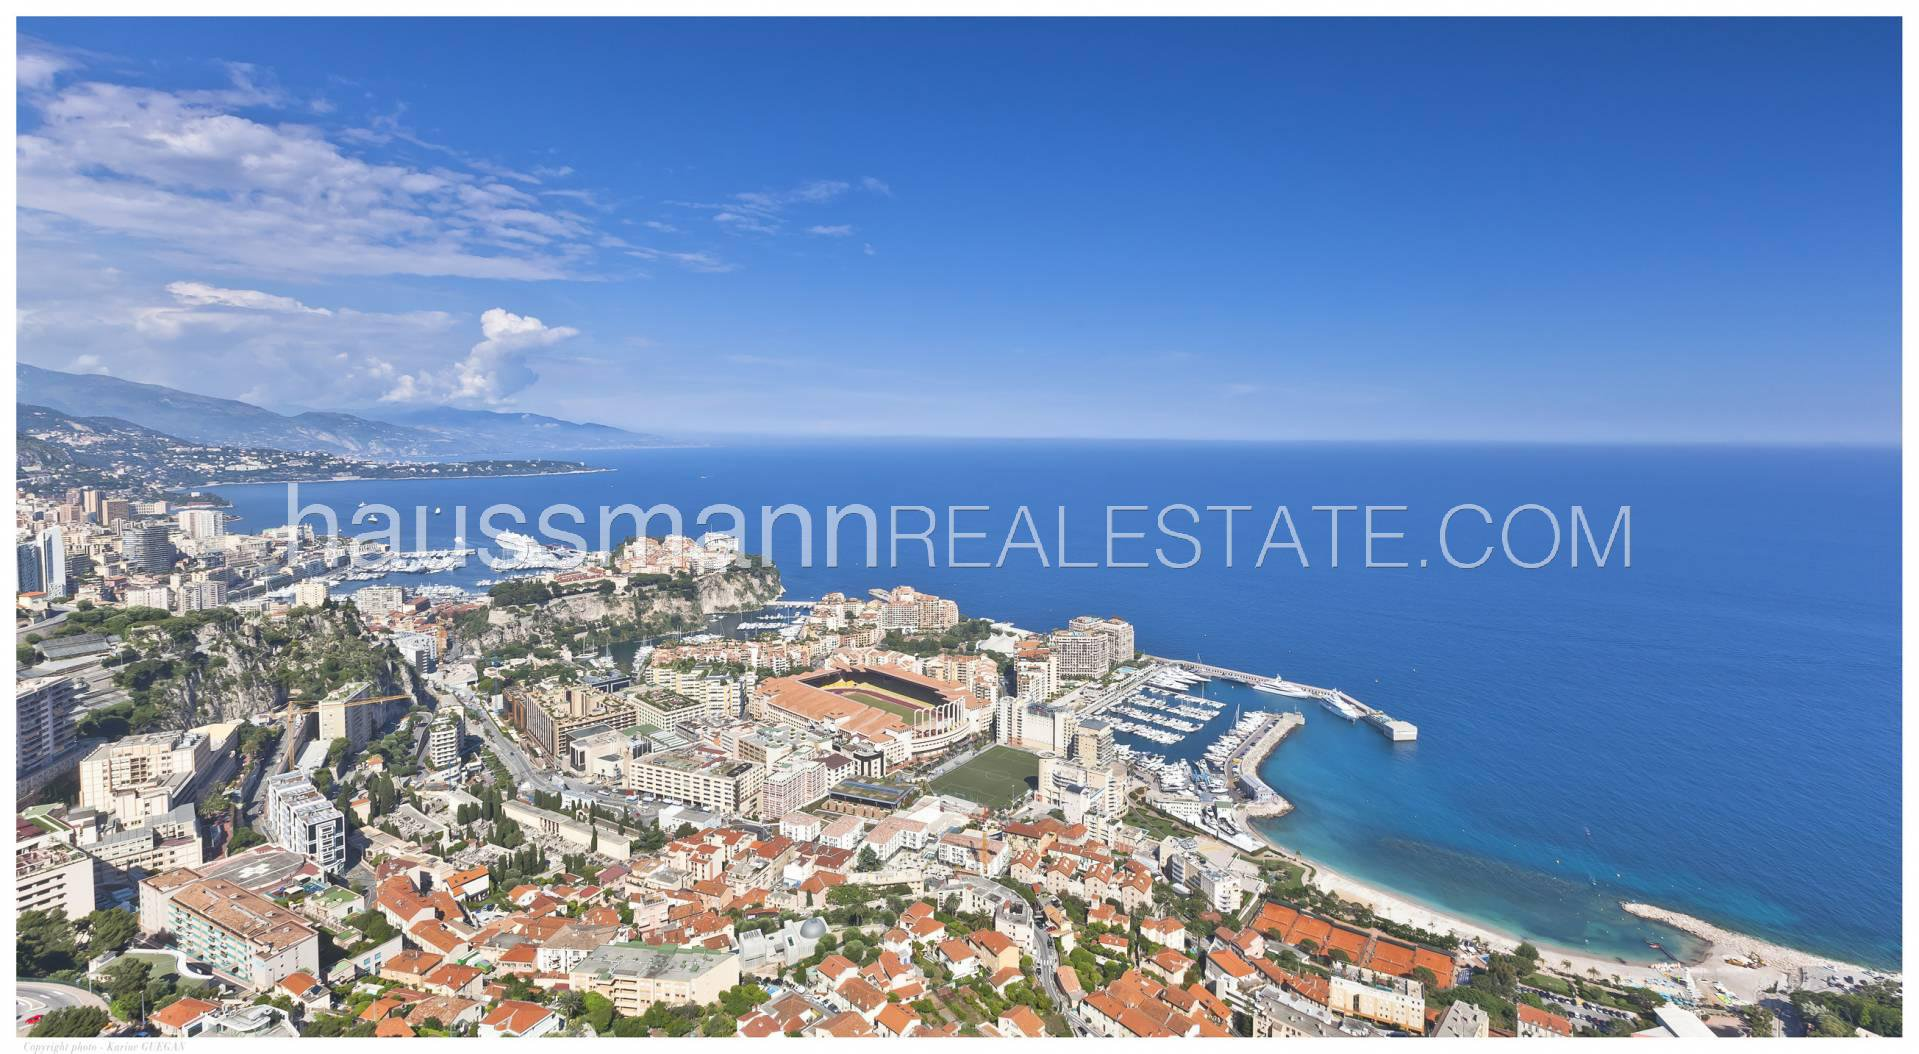 Superb sea view property on the hills of Monaco